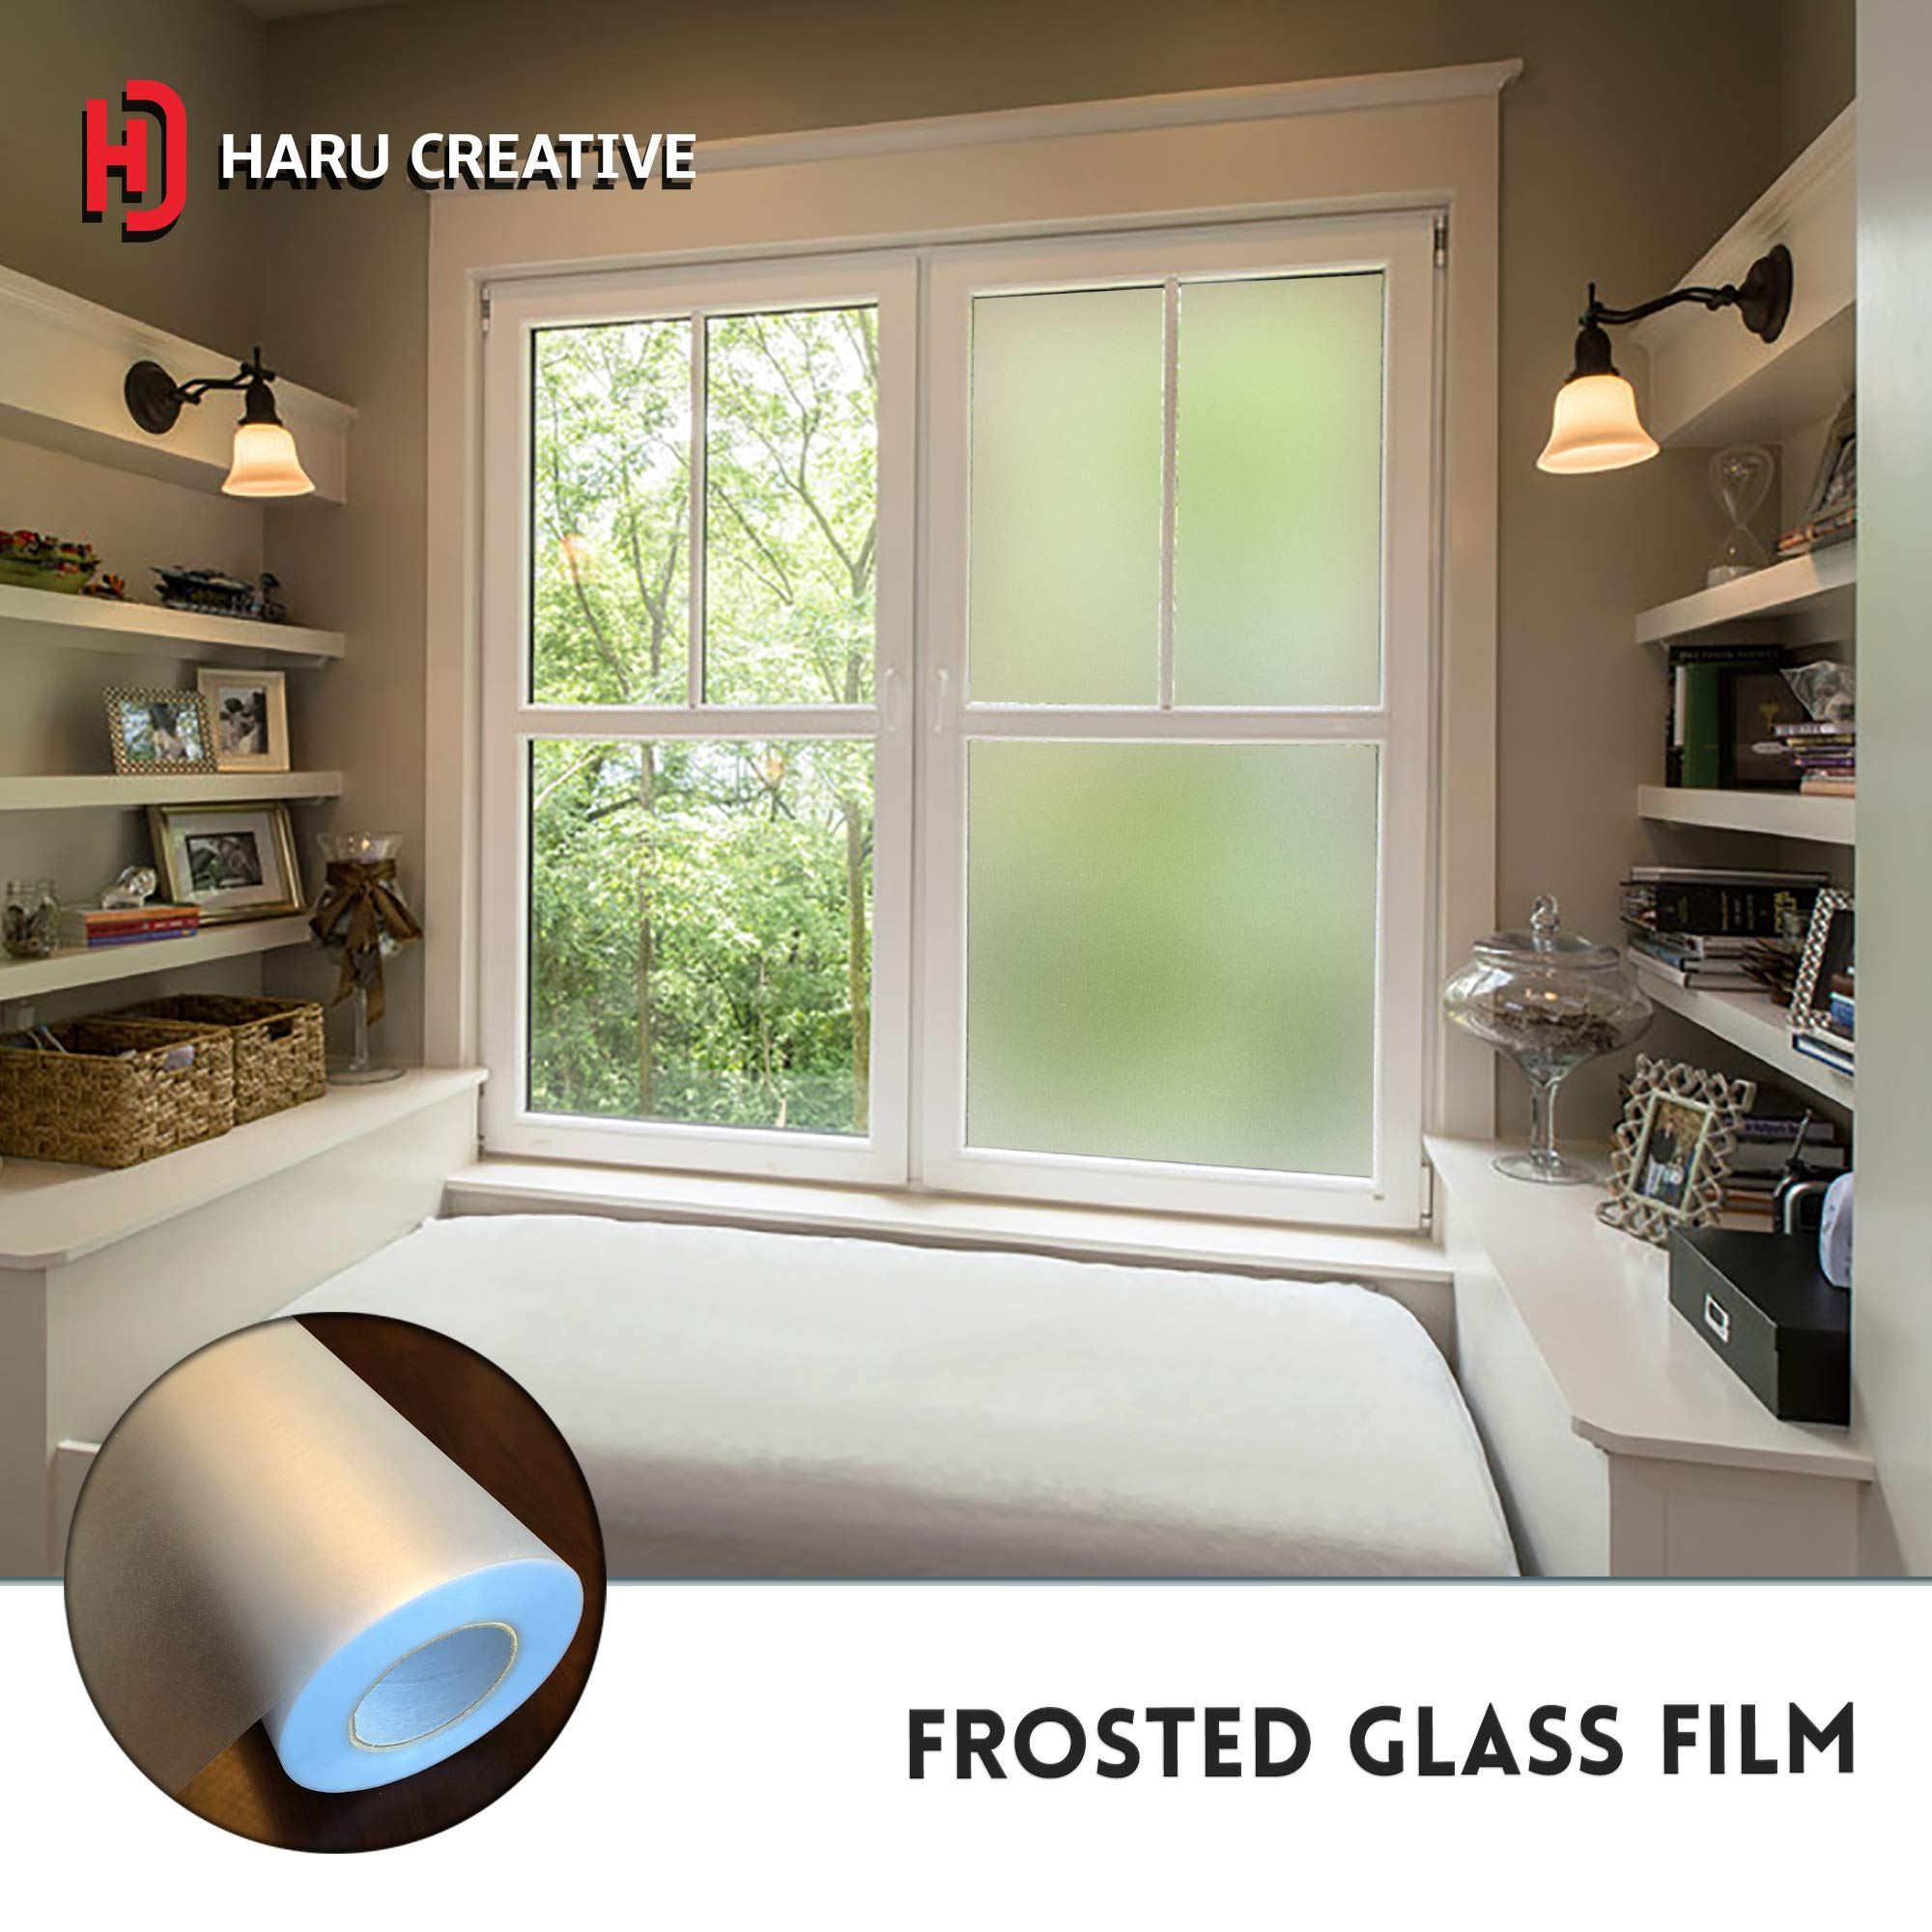 Haru Creative - Privacy Decorative Window Glass Frost Static Cling Adhesive Reusable Film Vinyl for Home Rooms Bathroom Work Space Office - Winter Frosted White Color (4FT x 10FT)